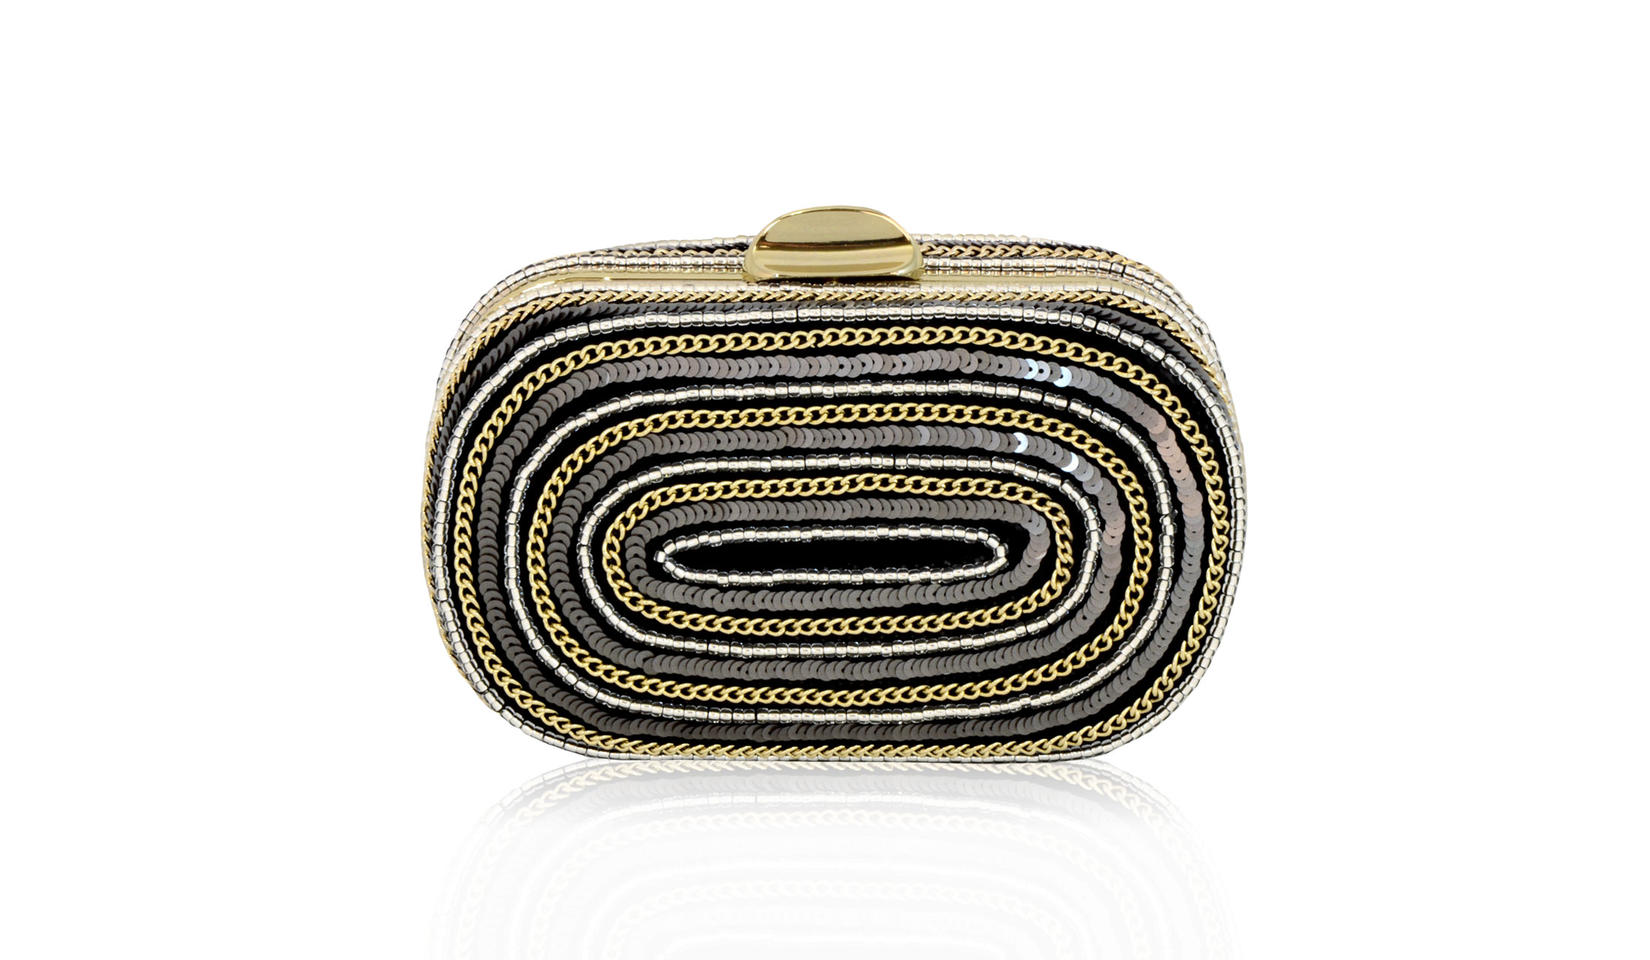 SEL-138-MT-straight-glass-beaded-sequin-clutch-bag-sparkly-minaudiere-graphic-pattern-evening-bag-gold-chain-special-occasion-handbag